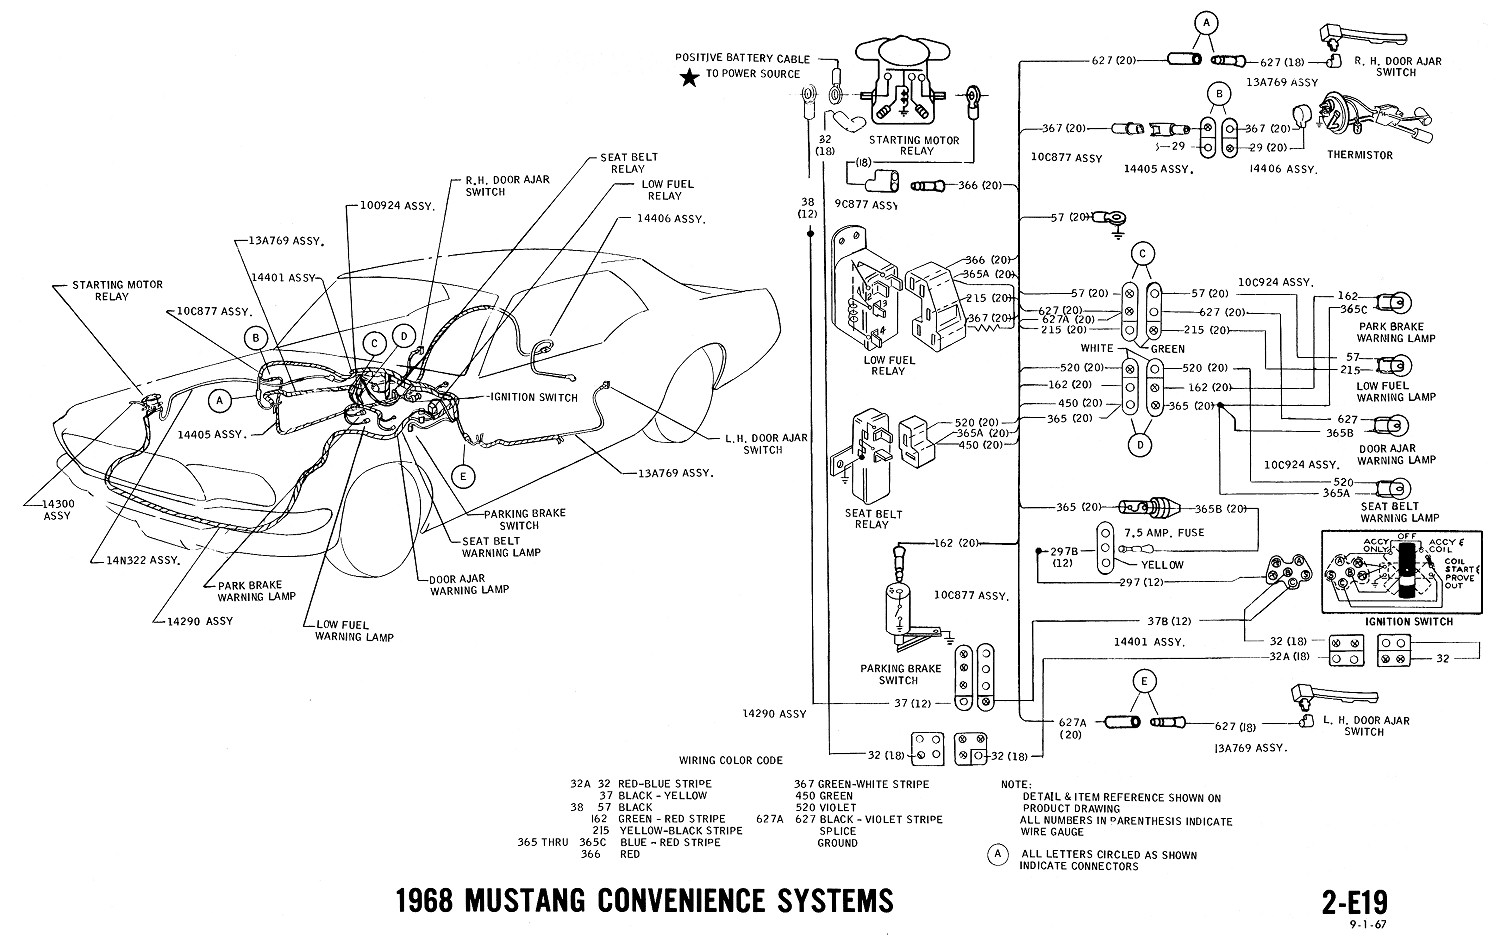 E19 1968 mustang wiring diagrams evolving software 1967 mustang wiring diagram at gsmportal.co